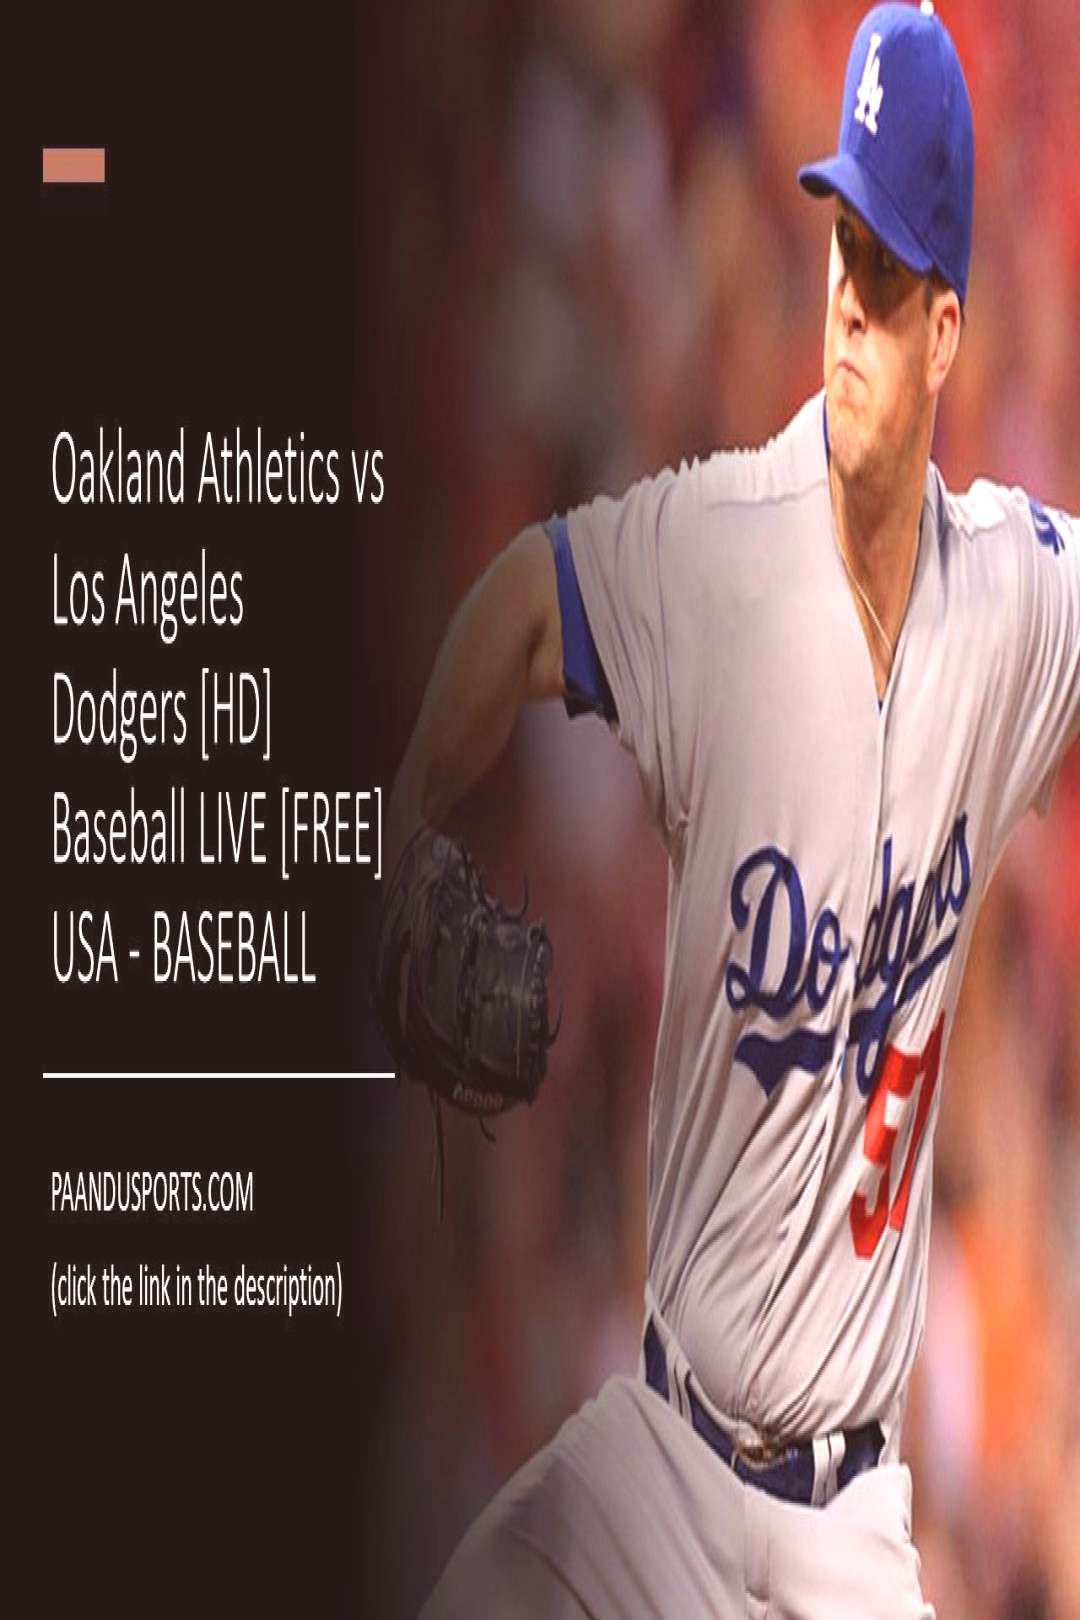 Oakland Athletics vs Los Angeles Dodgers Baseball | [HD] Live Stream | 05-Mar - USA - BASEBALL